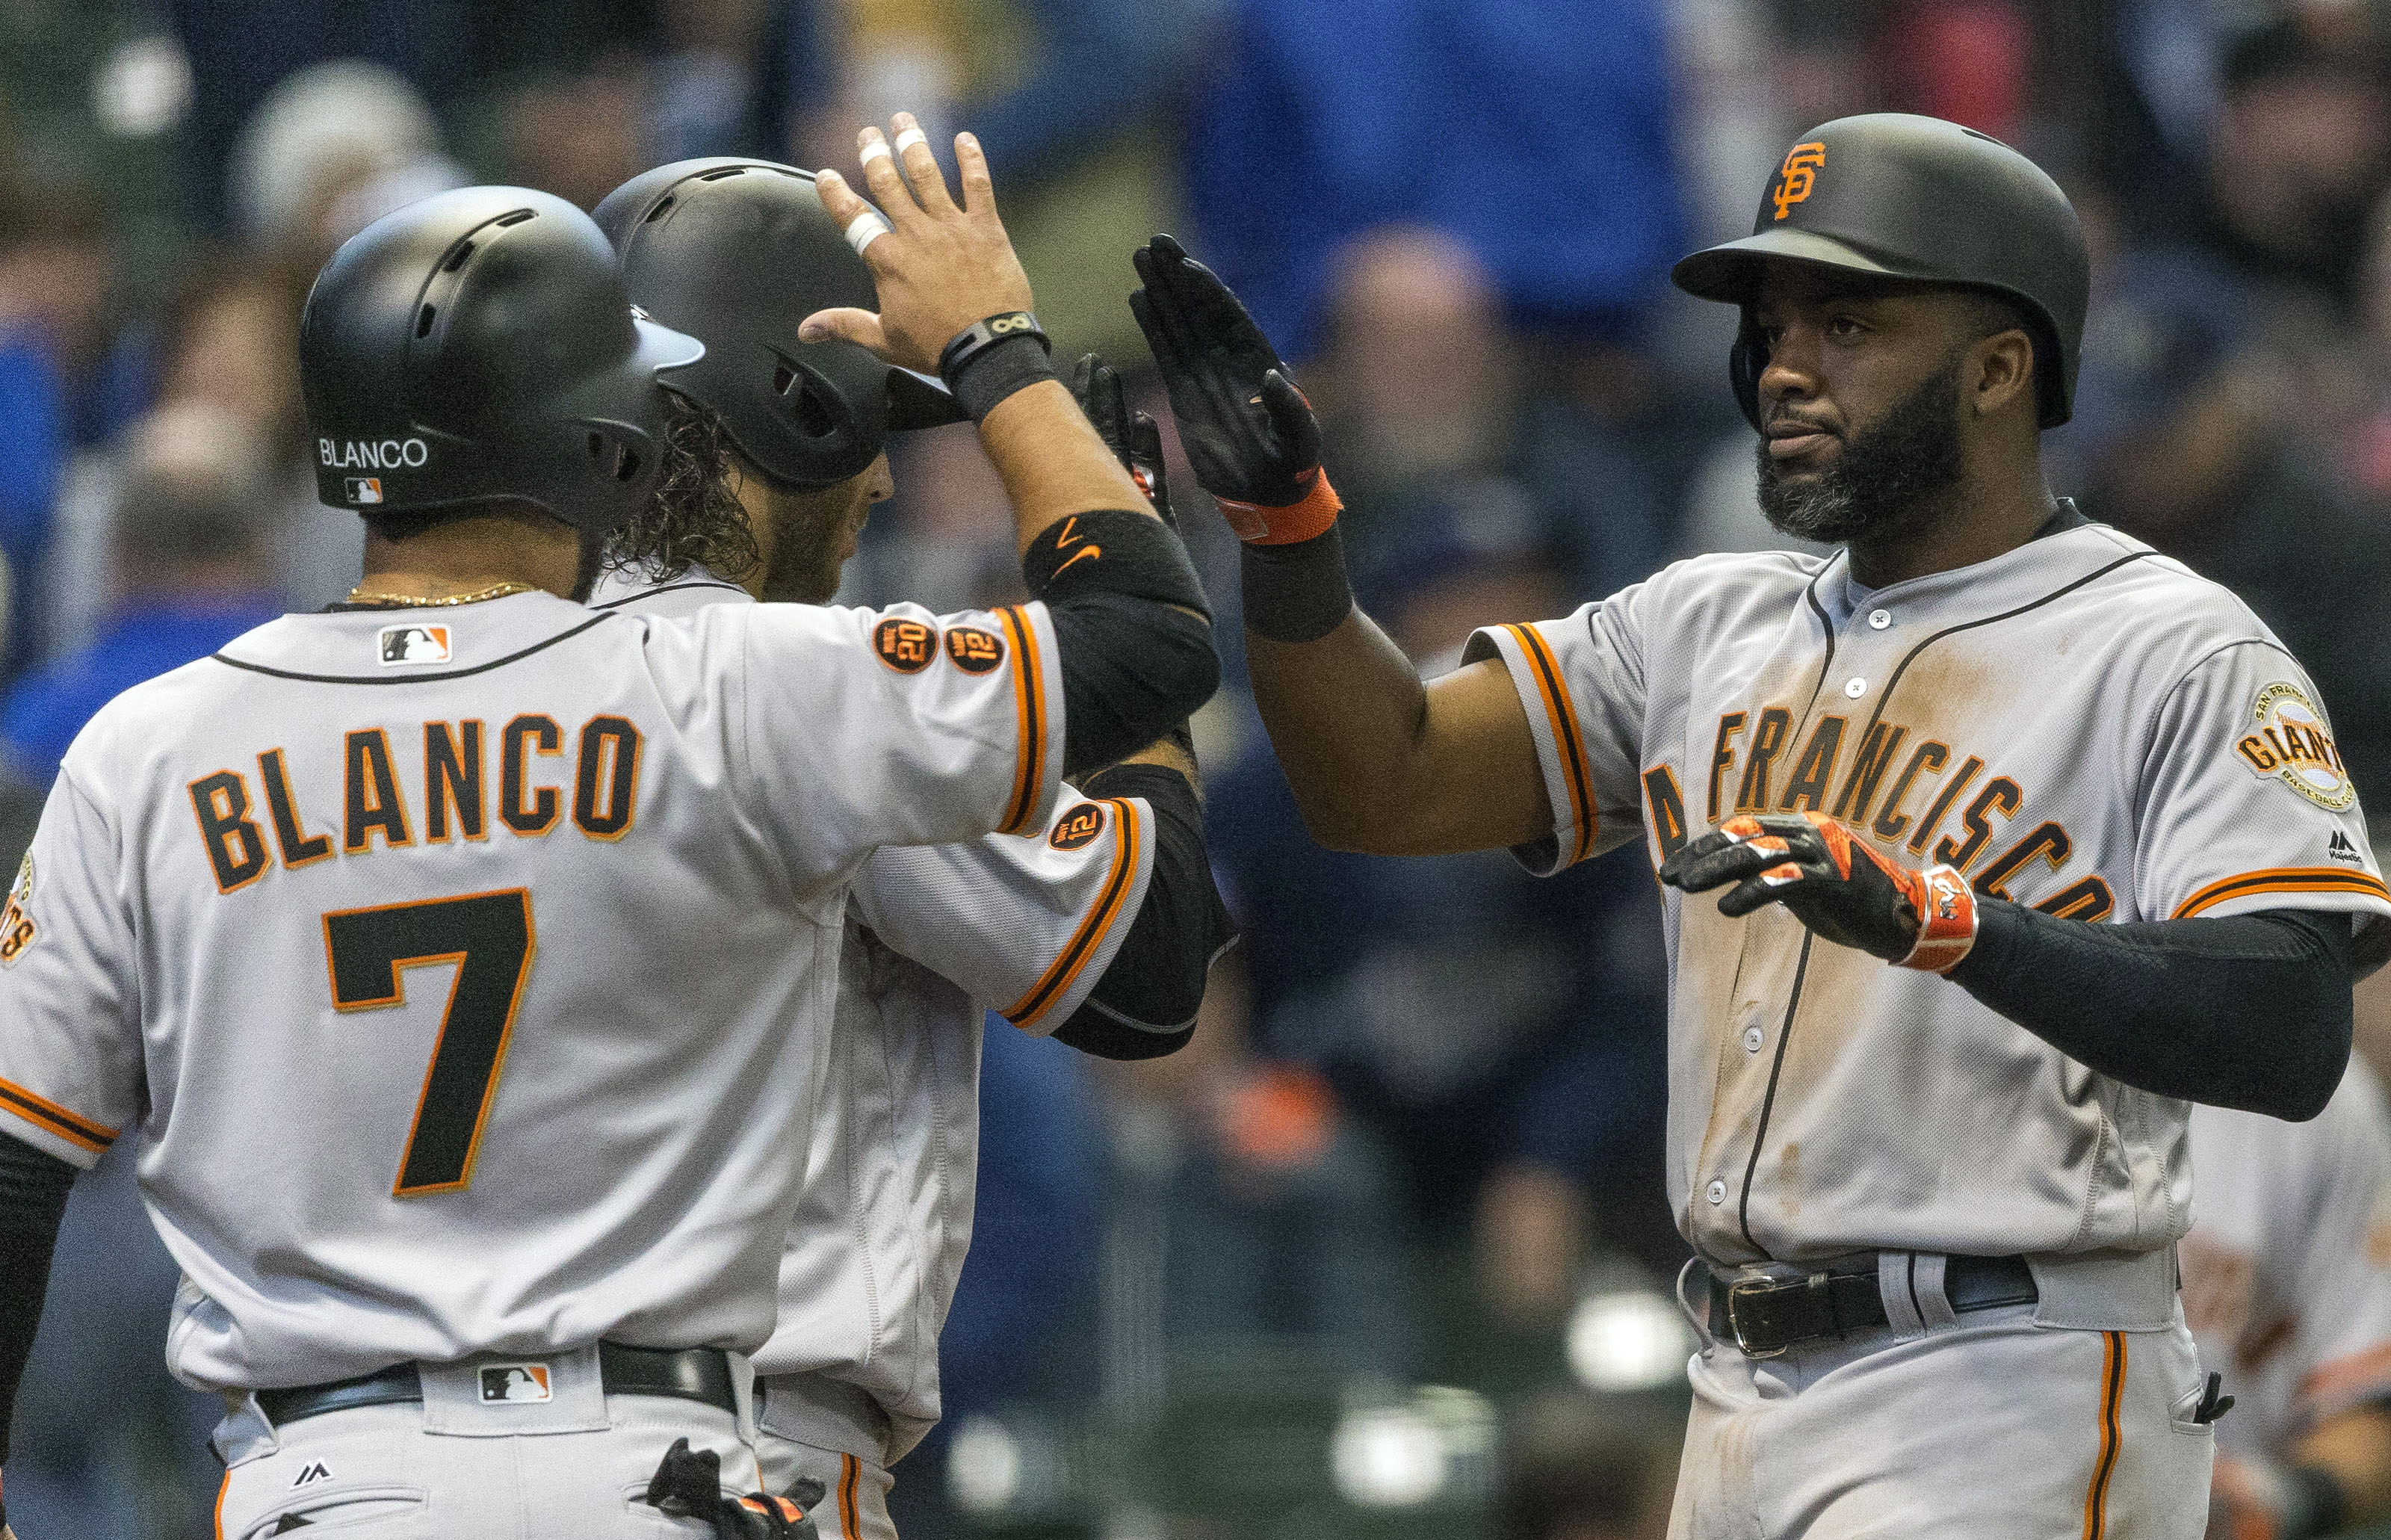 San Francisco Giants' Denard Span, right, is created by teammates Gregor Blanco and Brandon Crawford after hitting a three-run home run off Milwaukee Brewers' Ariel Pena during the eighth inning of a baseball game Monday, April 4, 2016, in Milwaukee. (AP